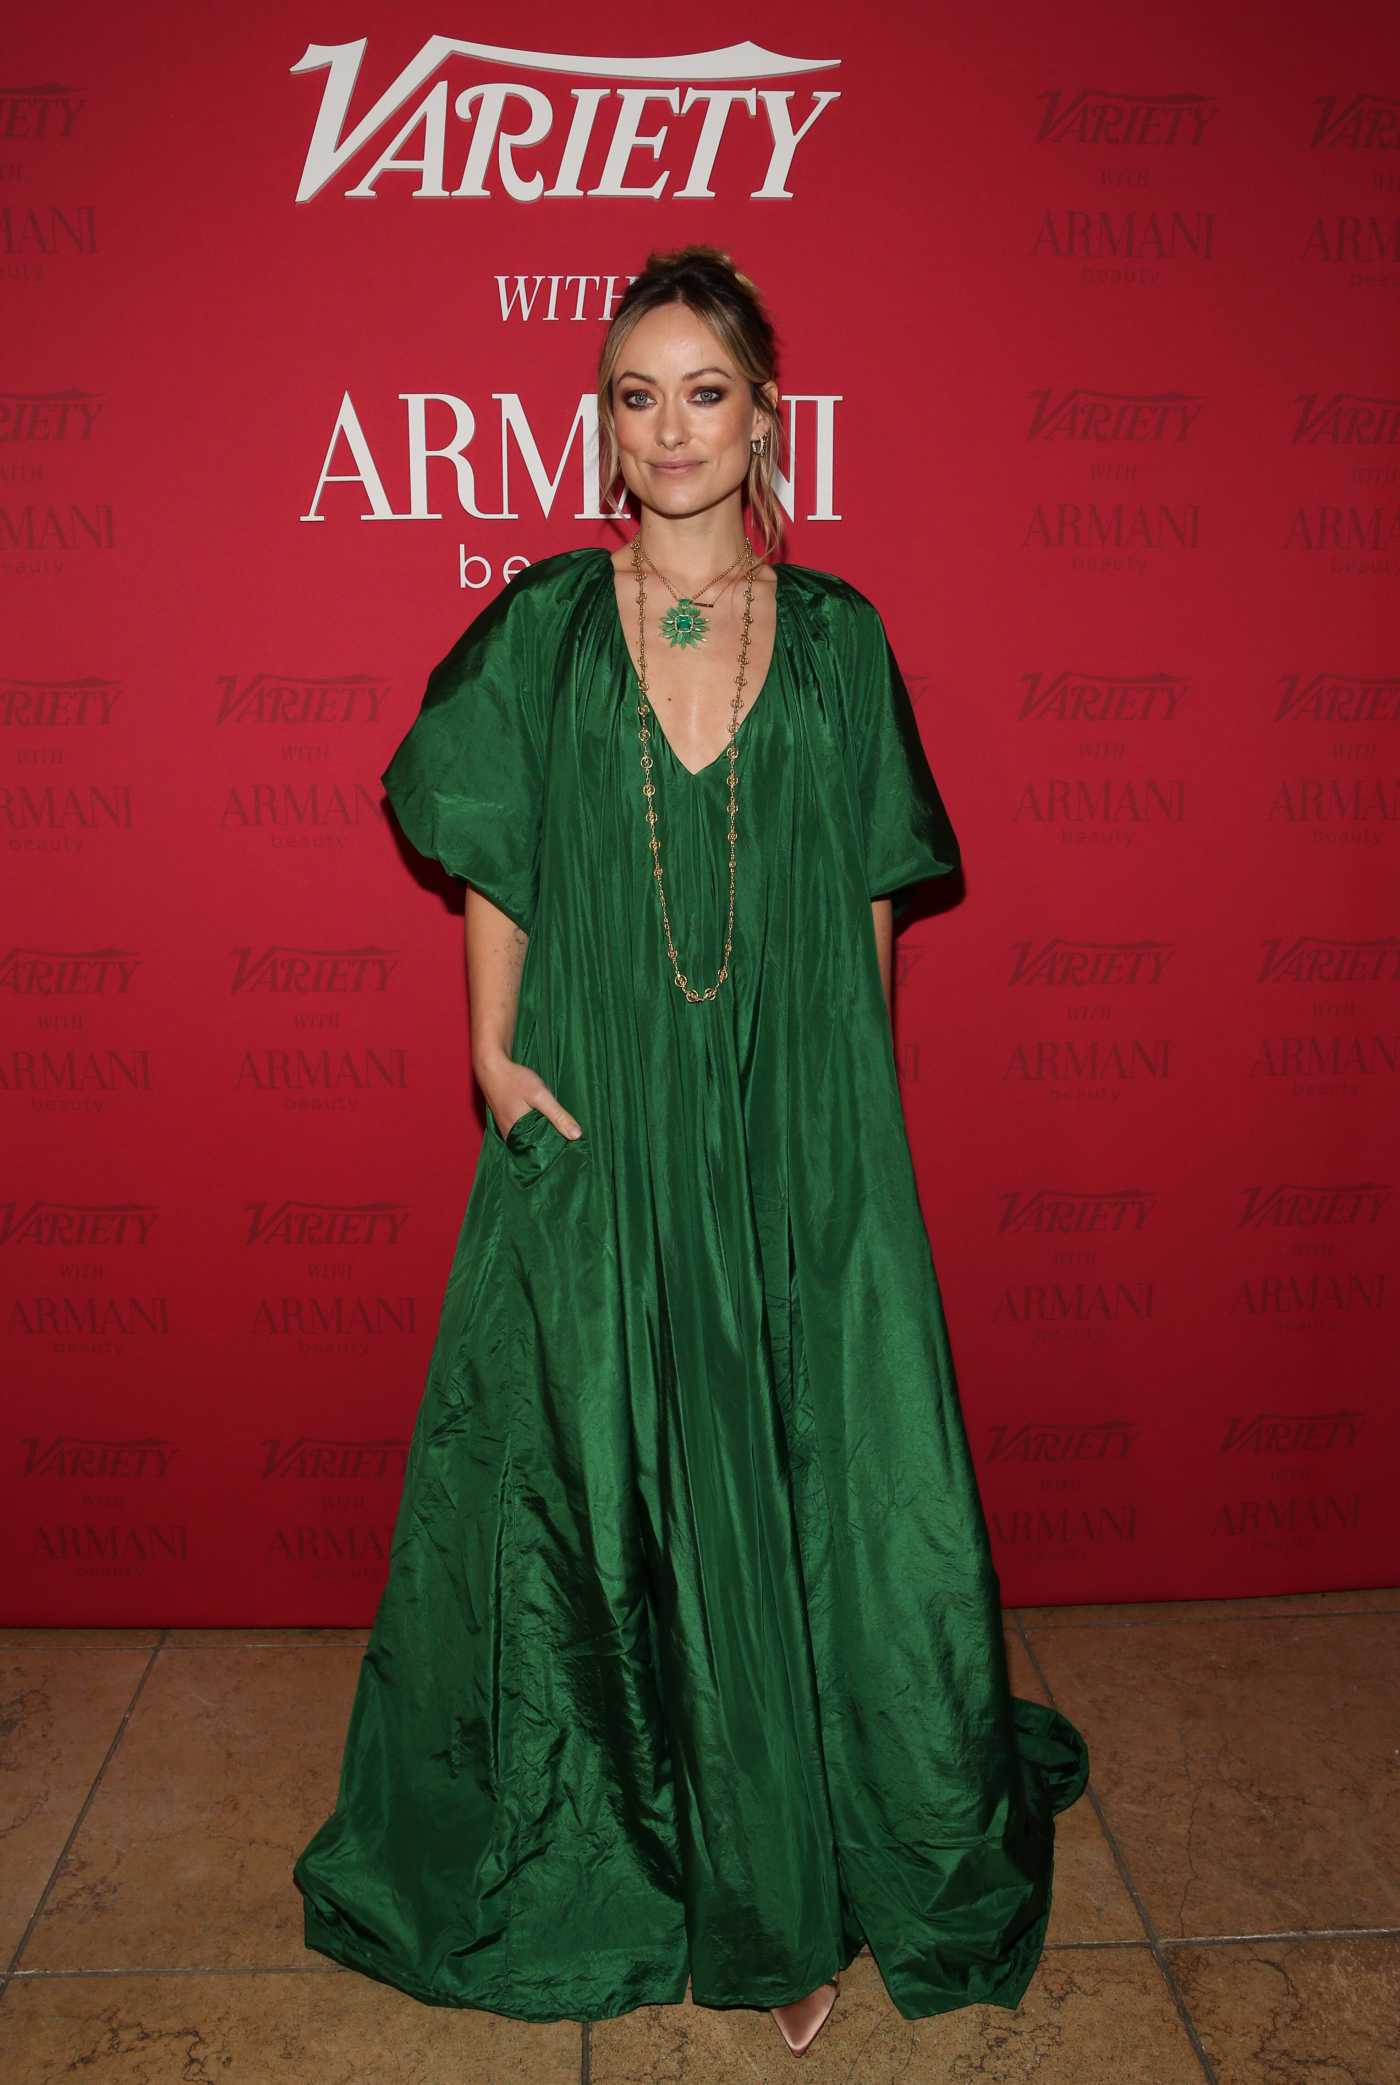 Olivia Wilde Attends the Variety x Armani Makeup Artistry Dinner at Sunset Tower in Los Angeles 02/04/2020